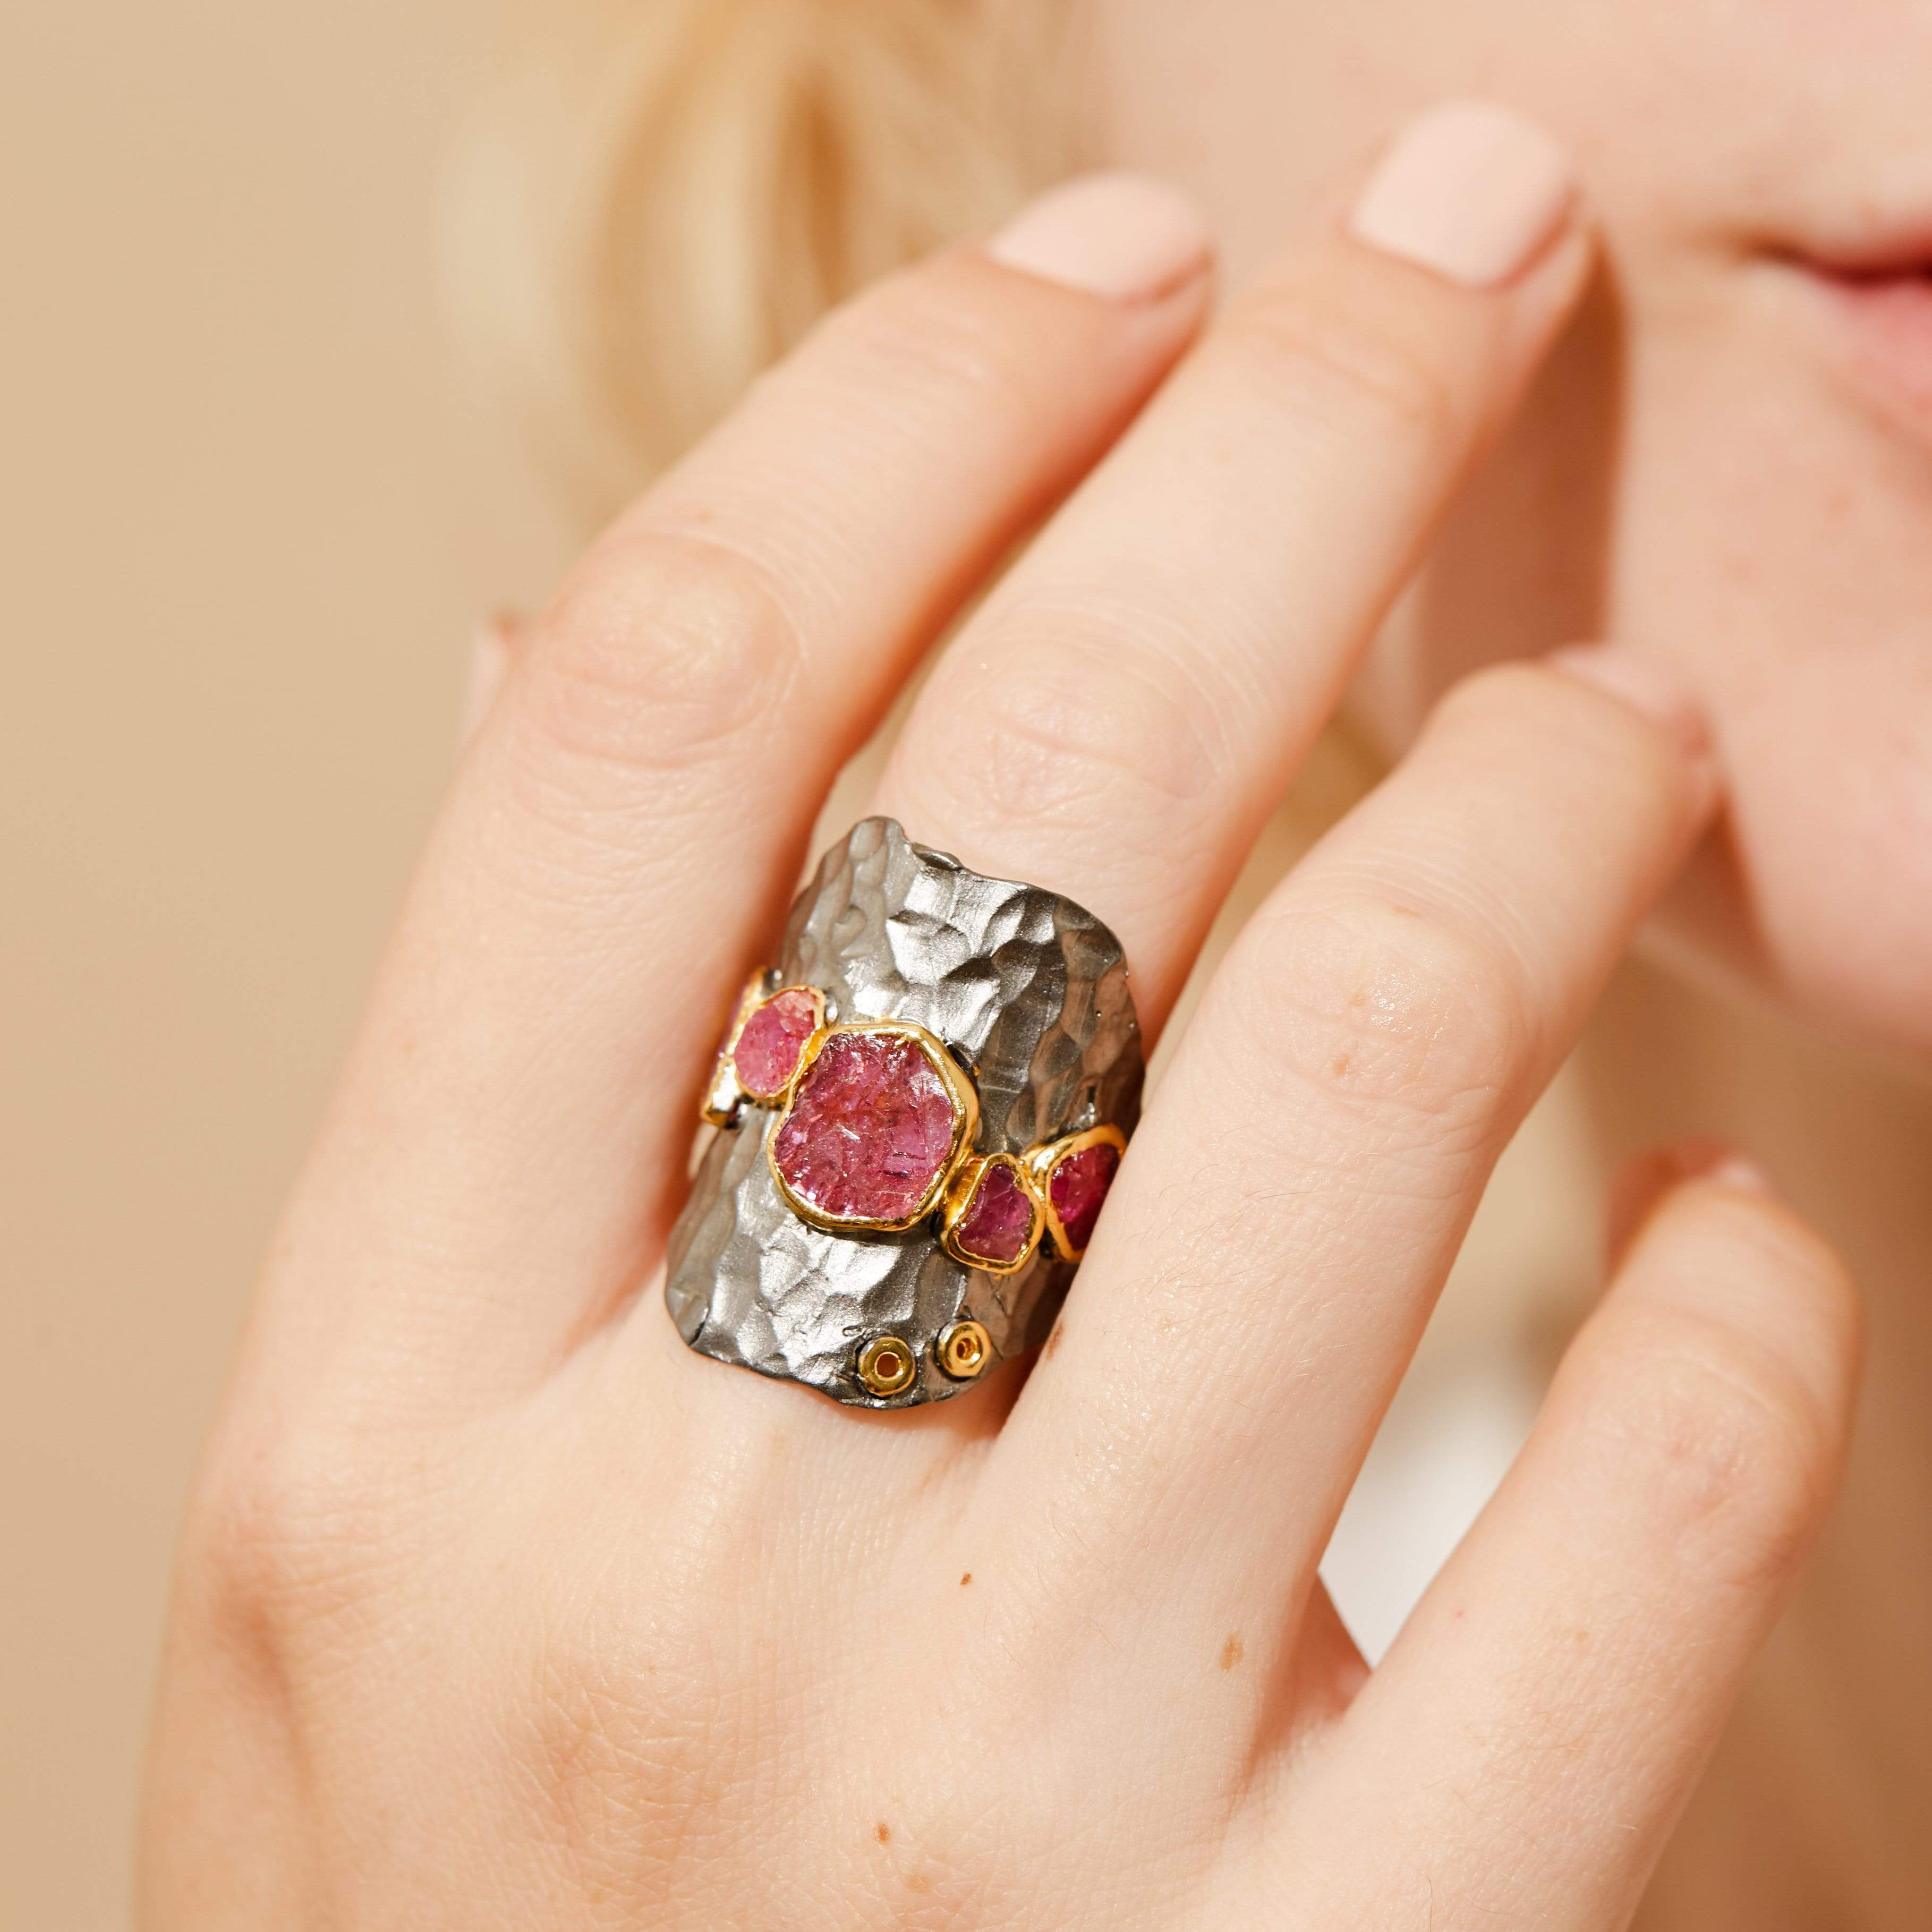 Caleona Ring, Gold, gray, Handmade, Rhodium, Ruby, spo-disabled, StoneColor:PinkRuby, Style:Everyday, Type:StoneCandyScattered Ring